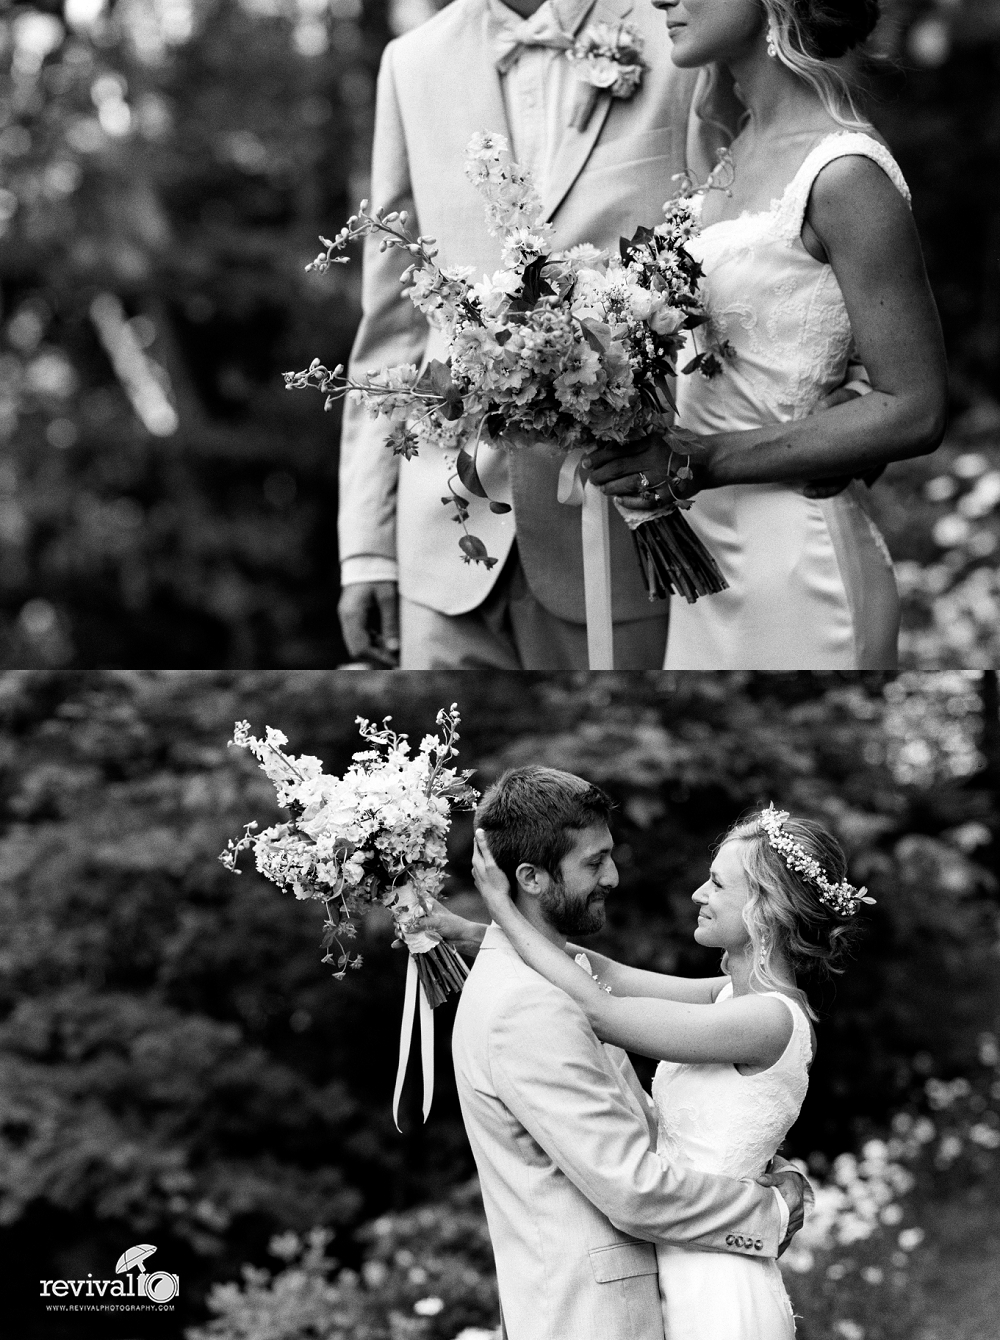 Now Booking 2016 Revival Weddings - Husband + Wife North Carolina Fine Art Destination Wedding Photographers Revival Photography Jason and Heather Barr www.revivalphotography.com